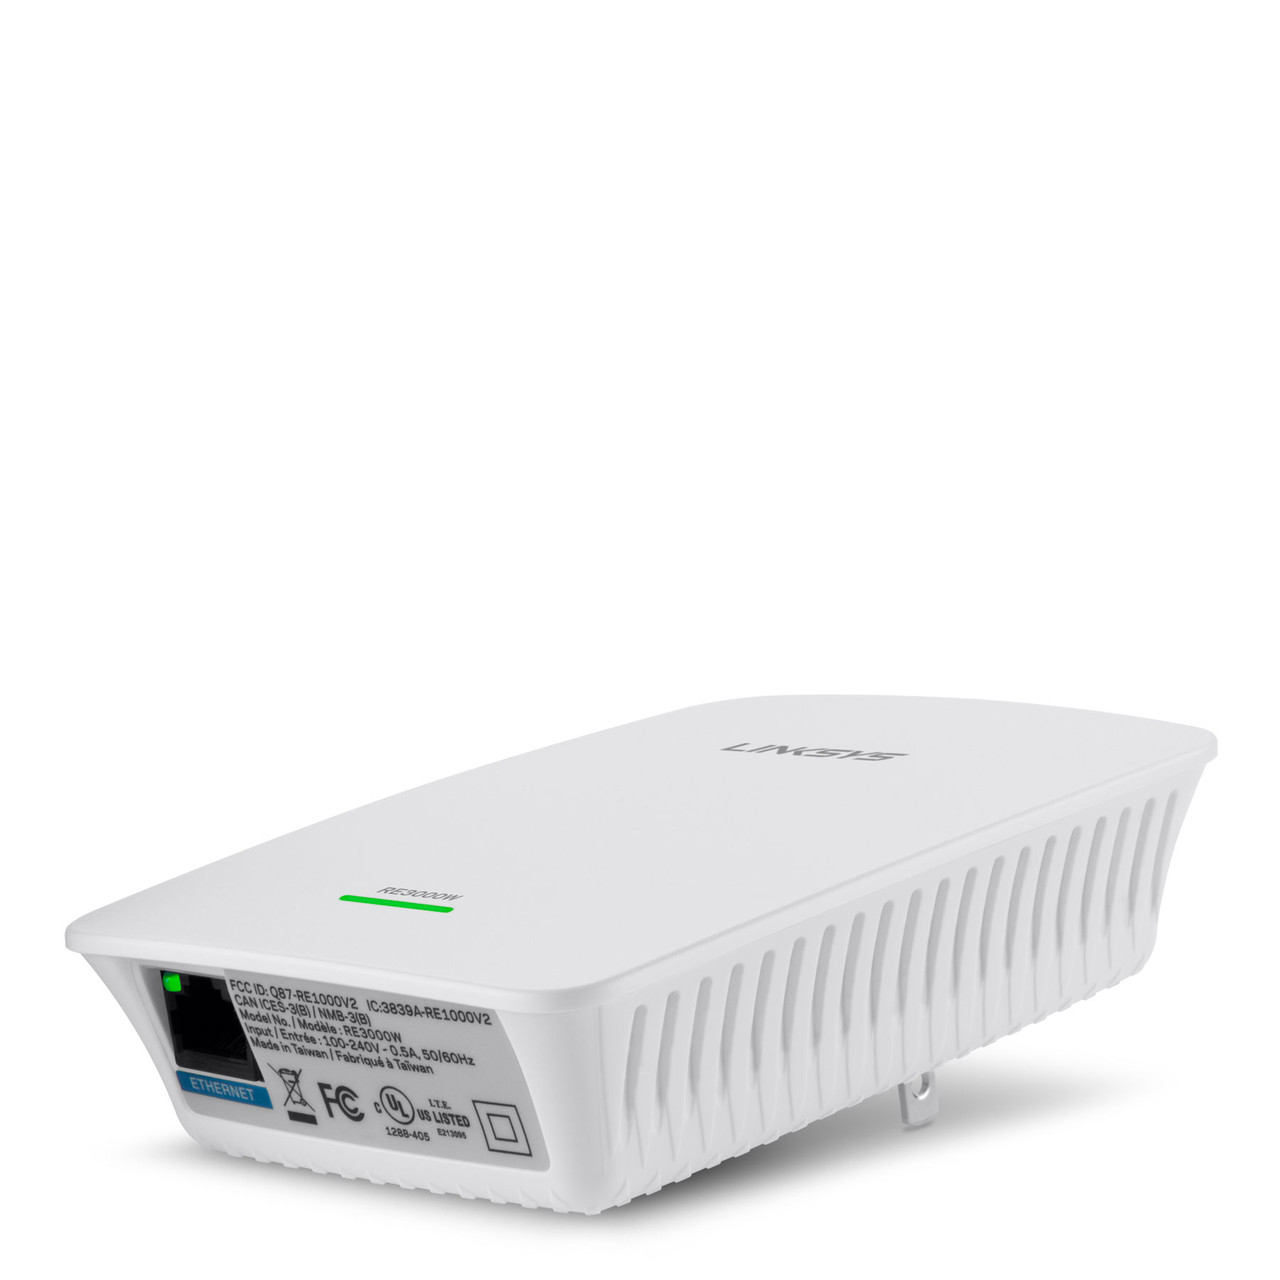 Расширитель сети Linksys RE3000W / N300 Wireless Range Extender